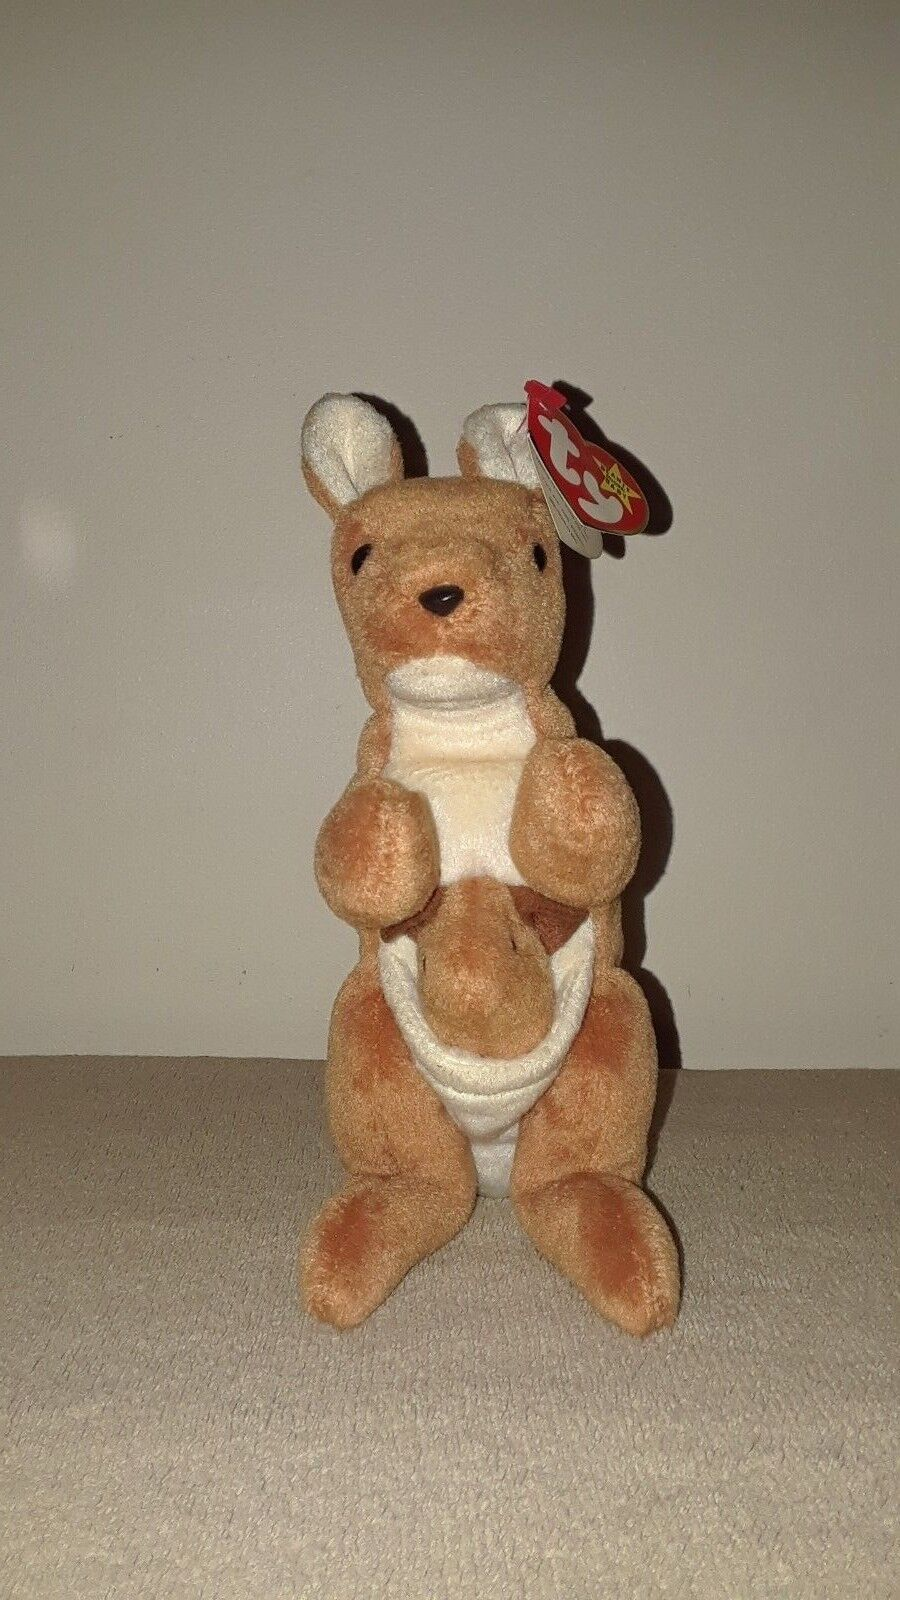 Rare TY Original Beanie Babies Pouch Kangaroo 1996 Retired with Tag Errors